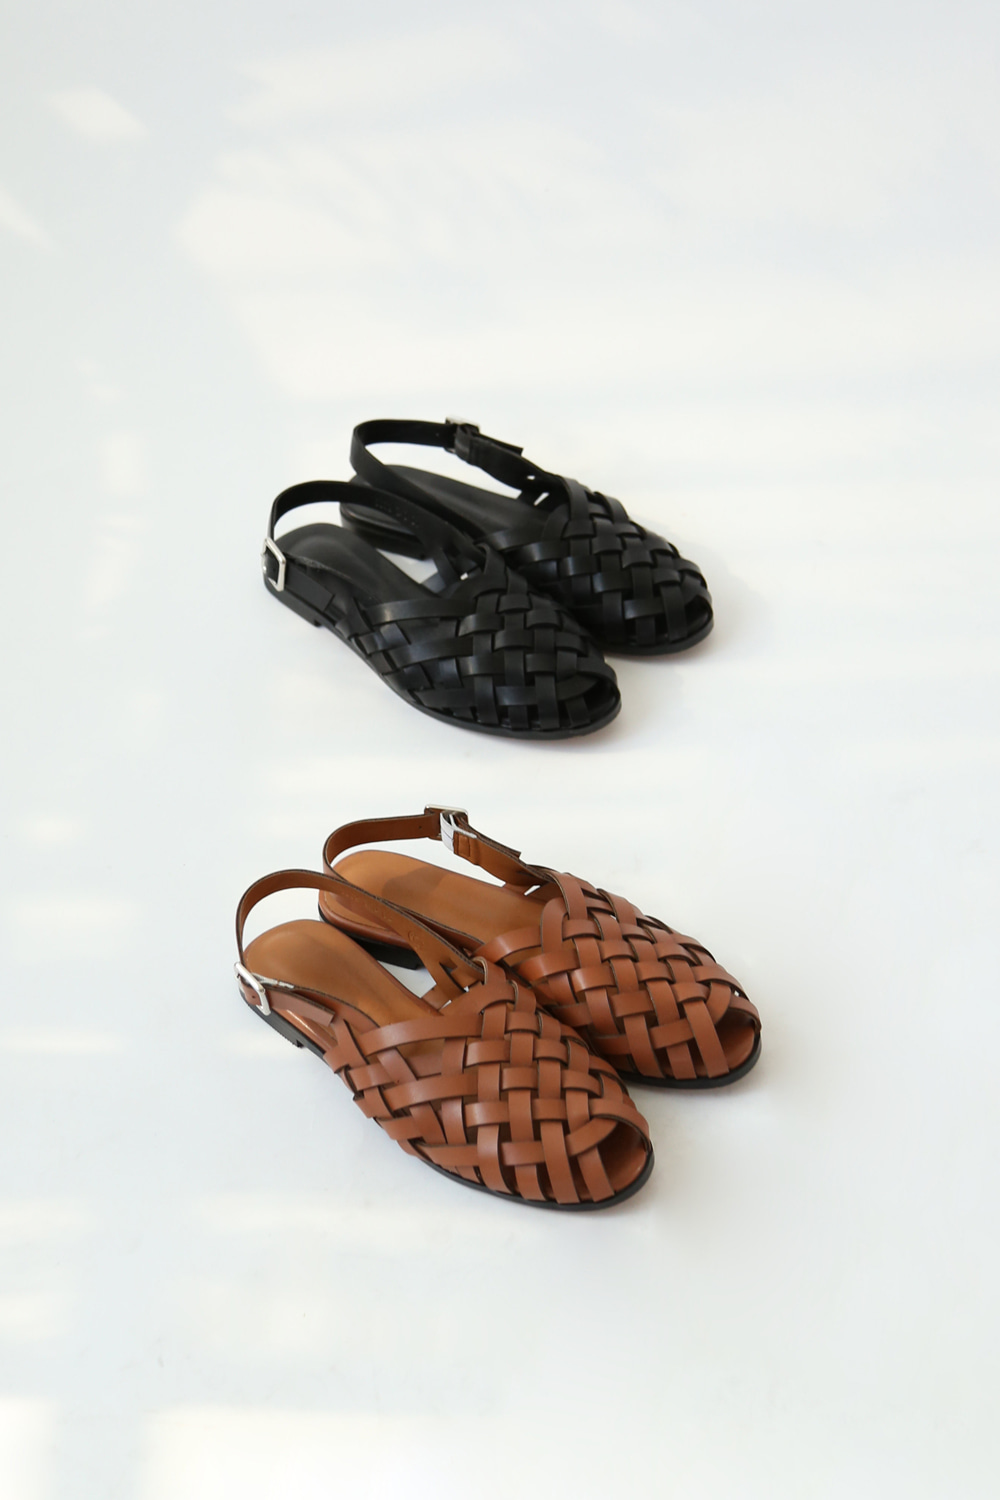 WOVEN LEATHER SANDALS(brown, black)